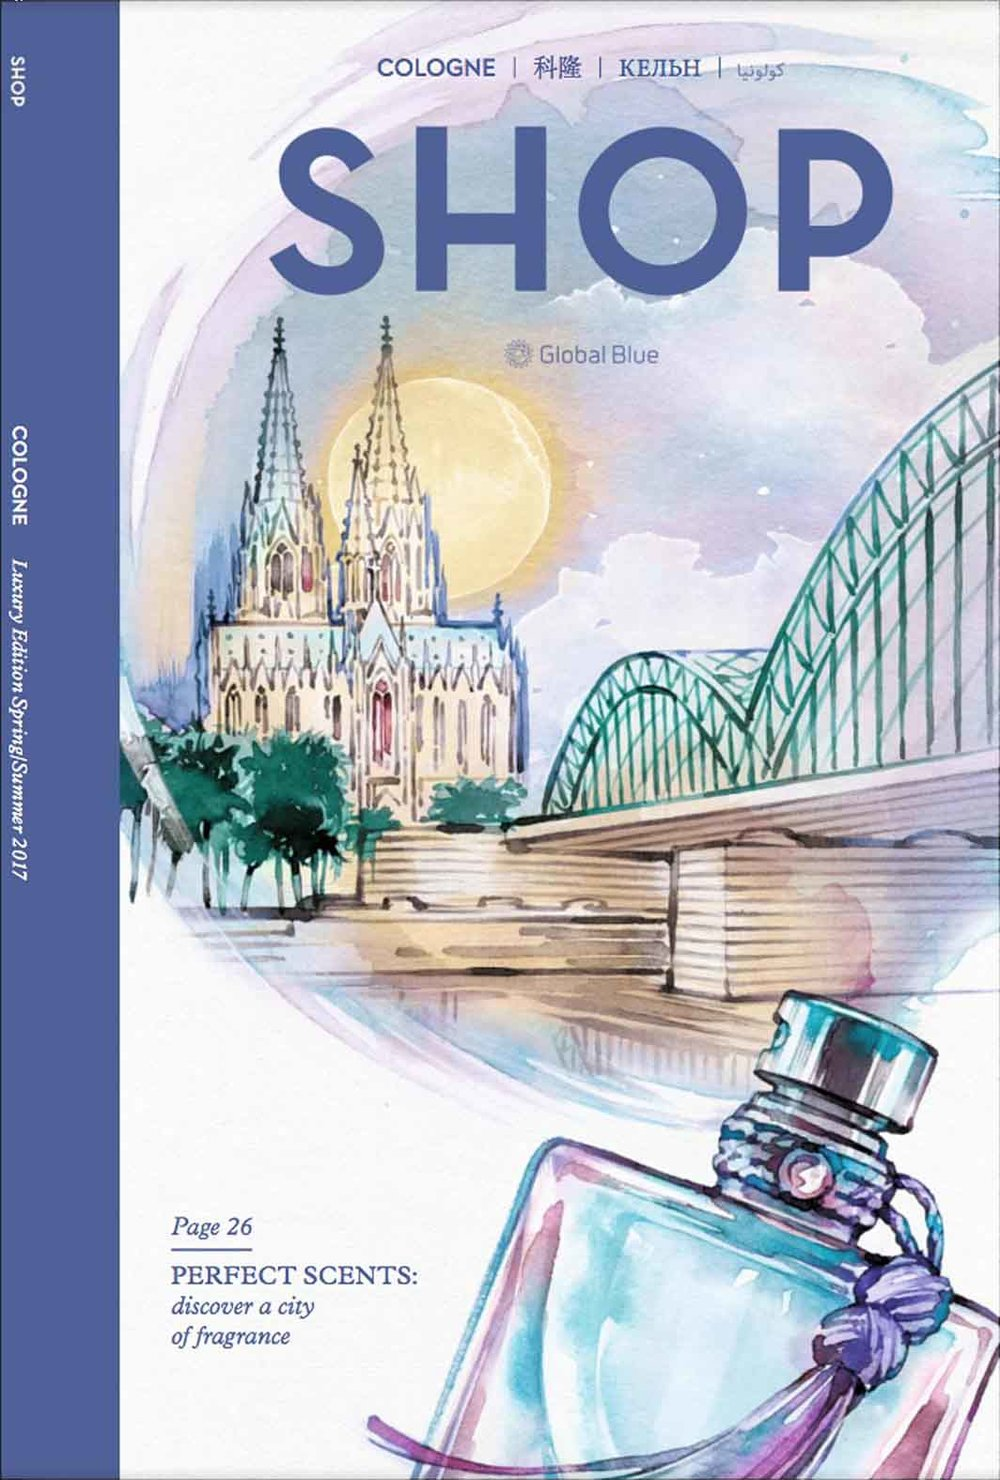 SHOP Magazine - Cover - 2017